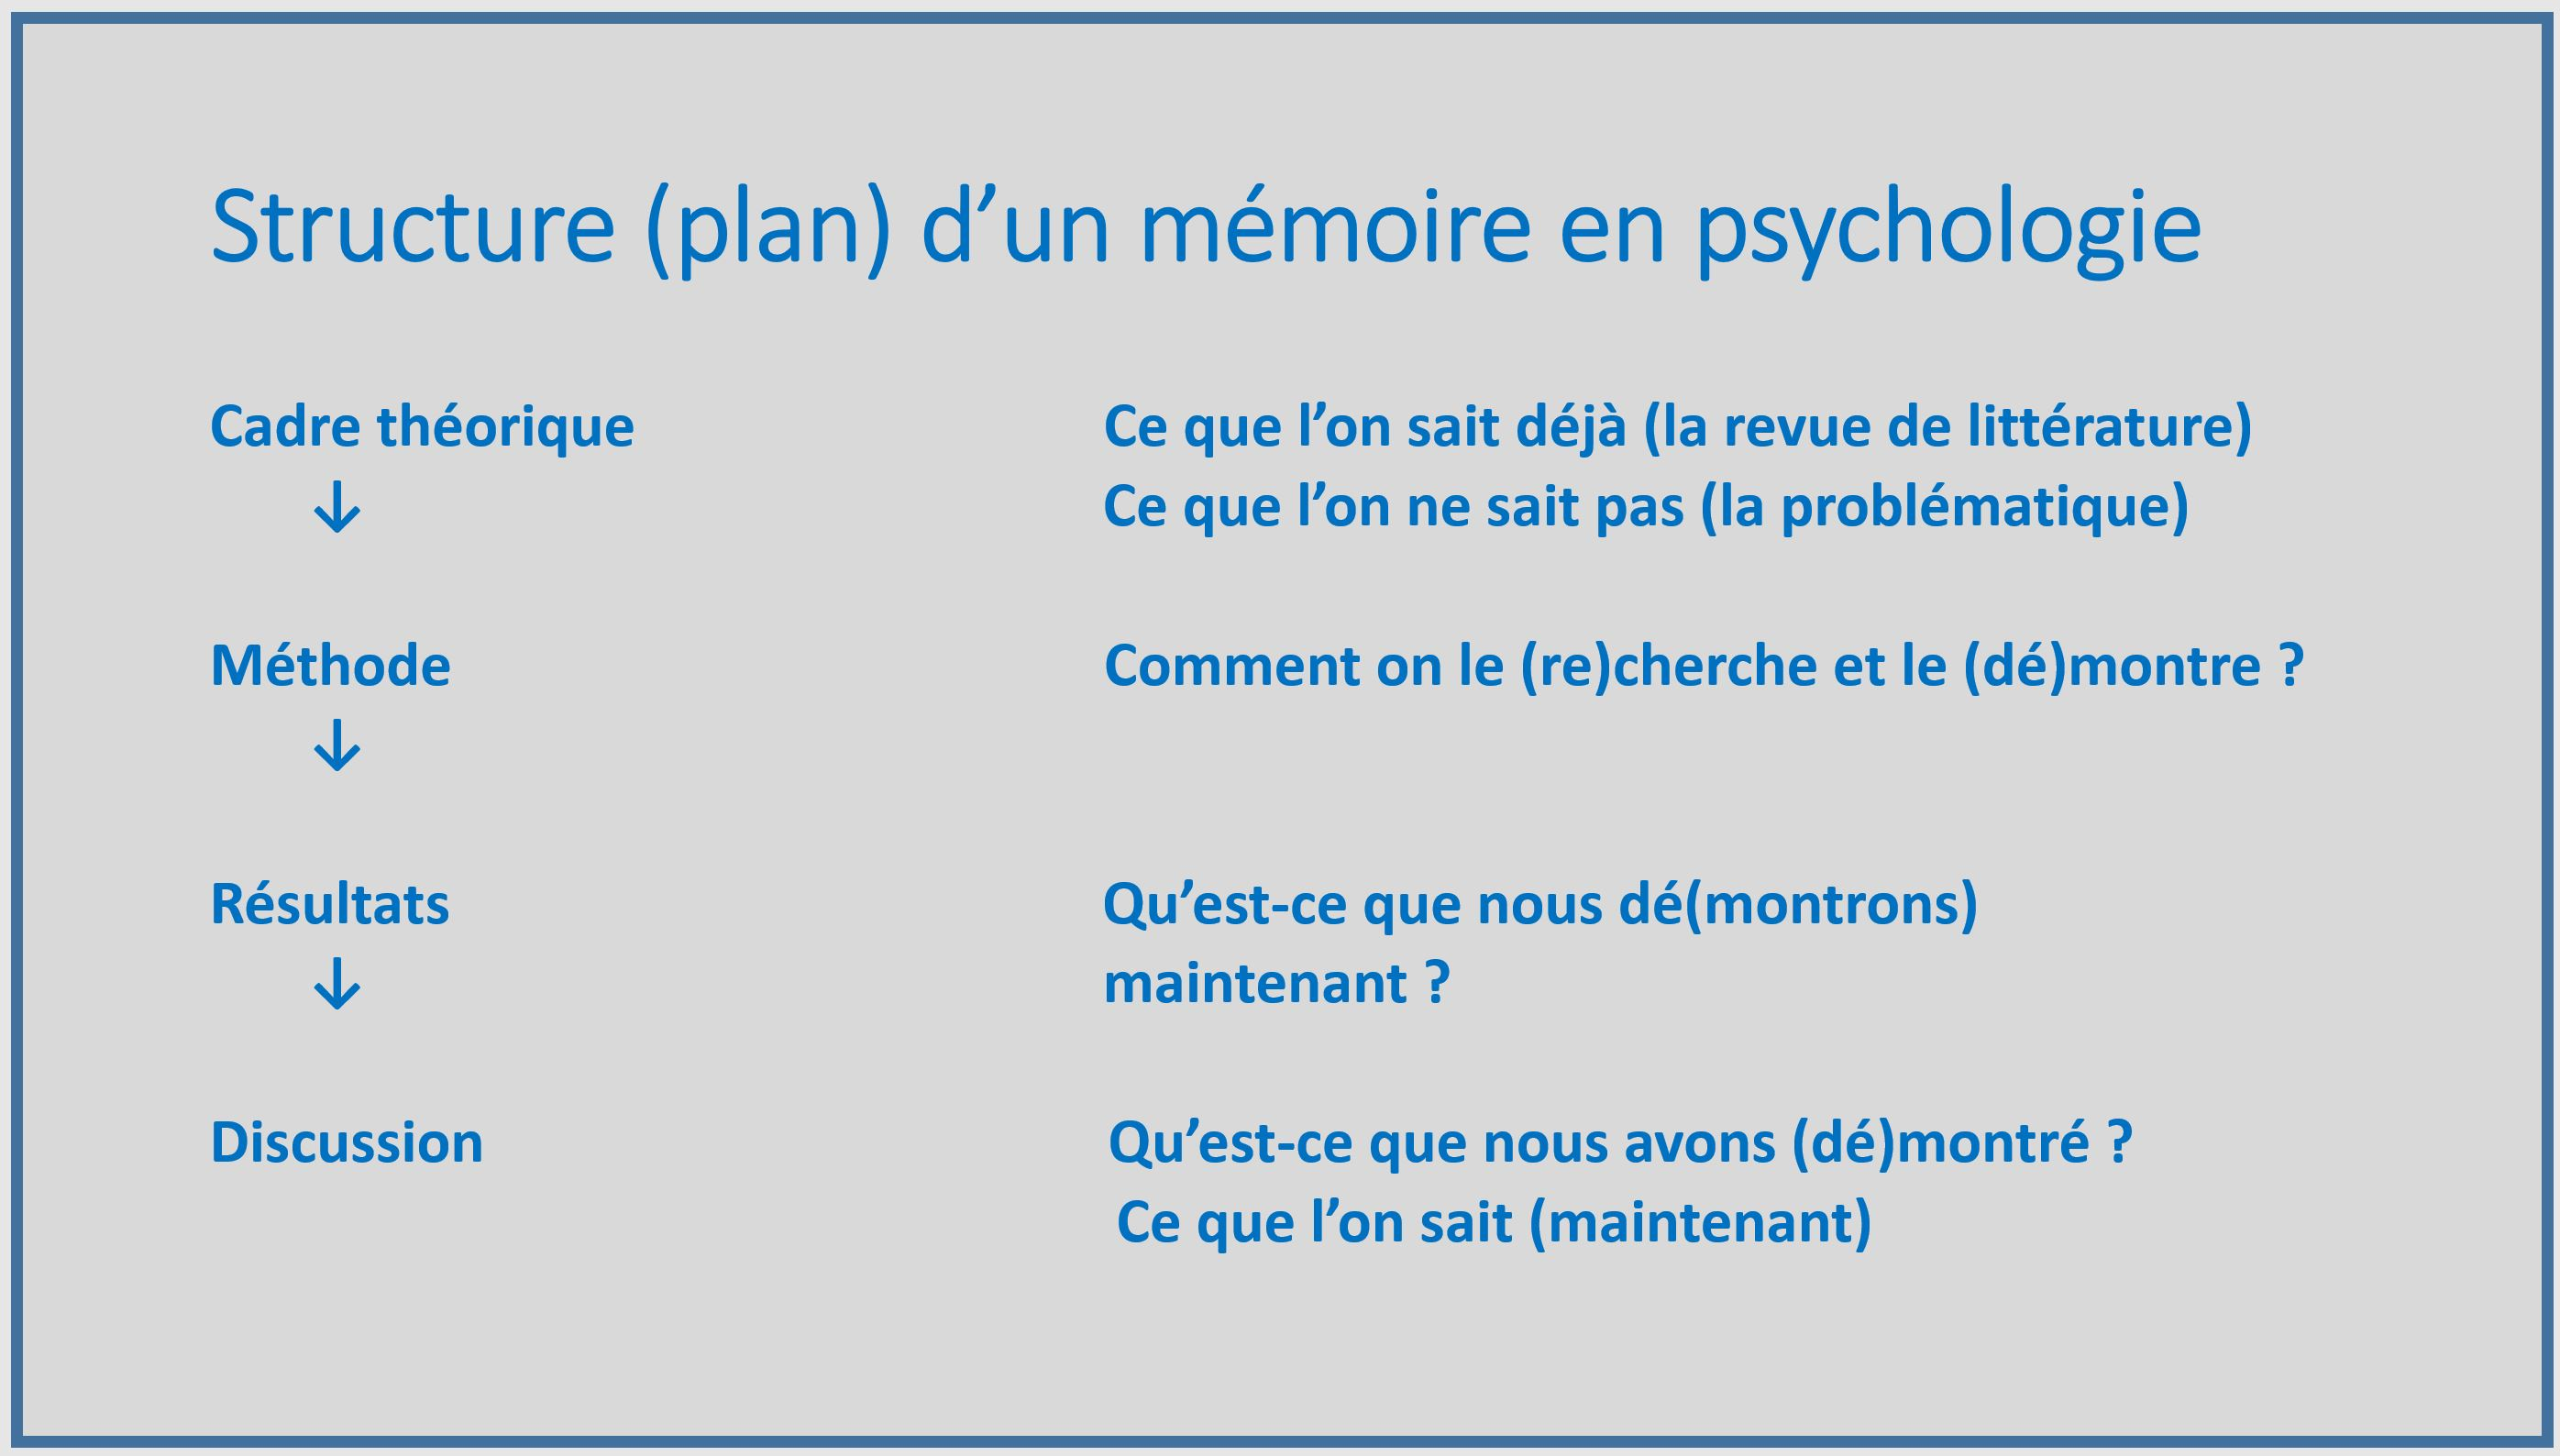 structure plan memoire psychologie